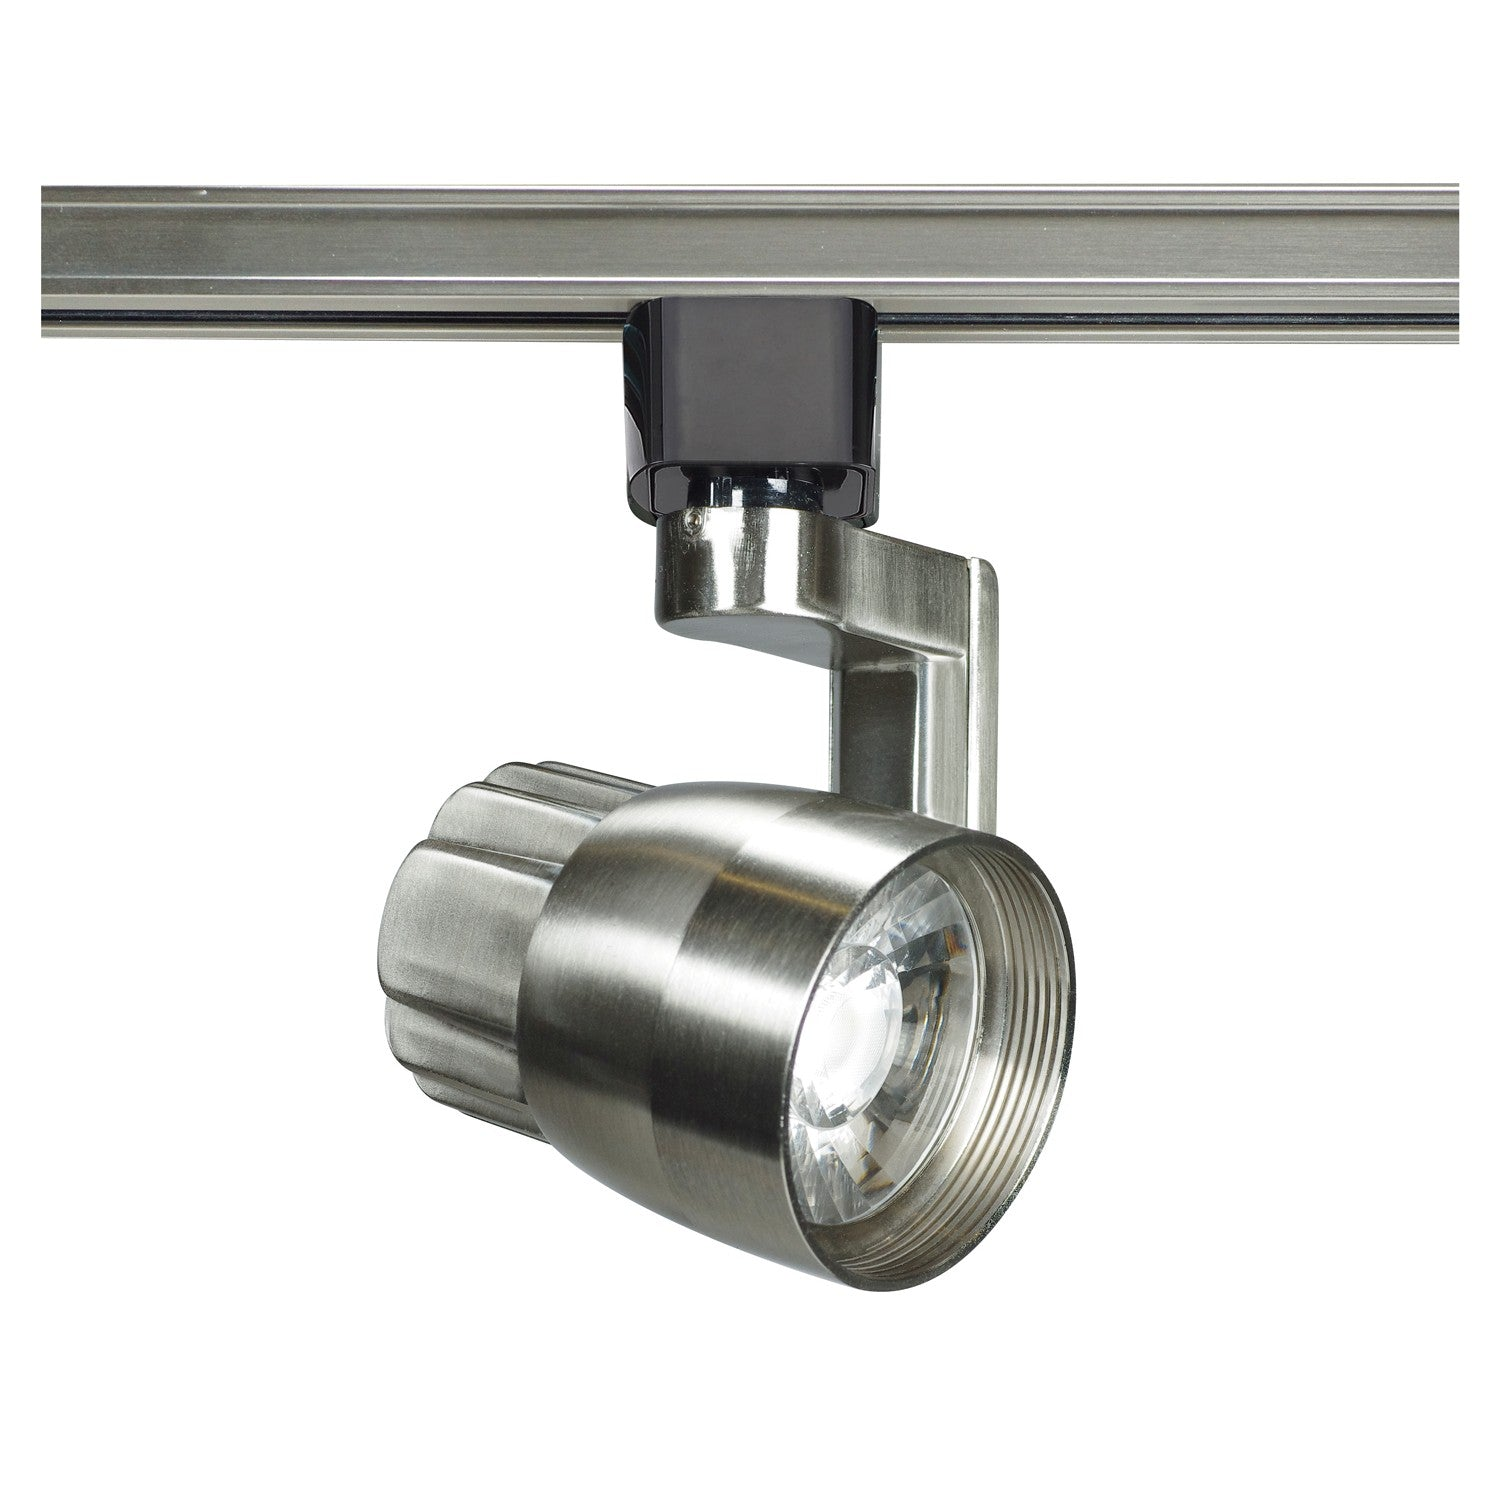 Nuvo TH425 12 Watt LED Track Head Brushed Nickel Finish 24 Degree Beam Angle